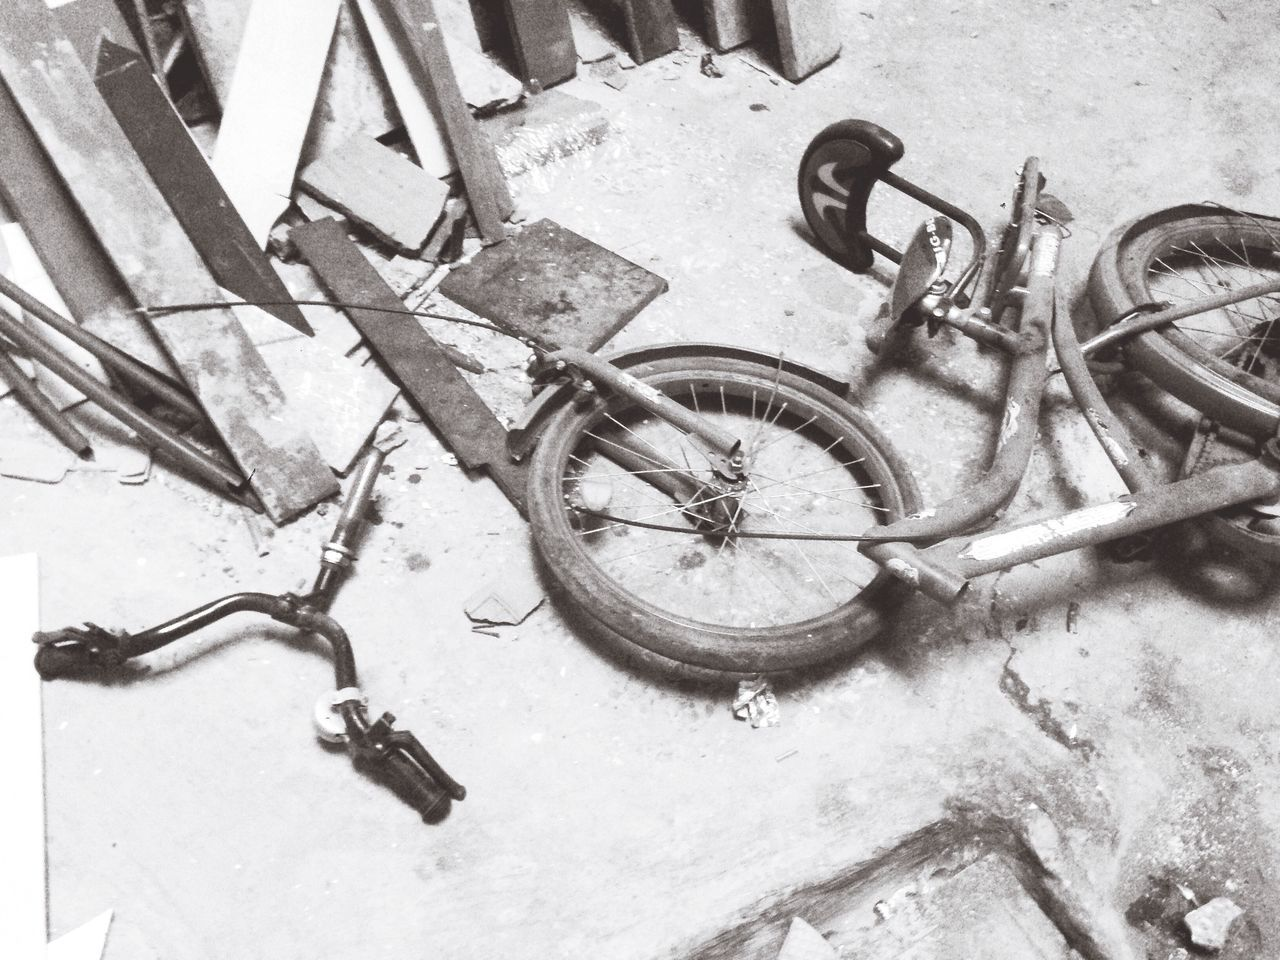 High Angle View Of Damaged Bicycle In Abandoned House